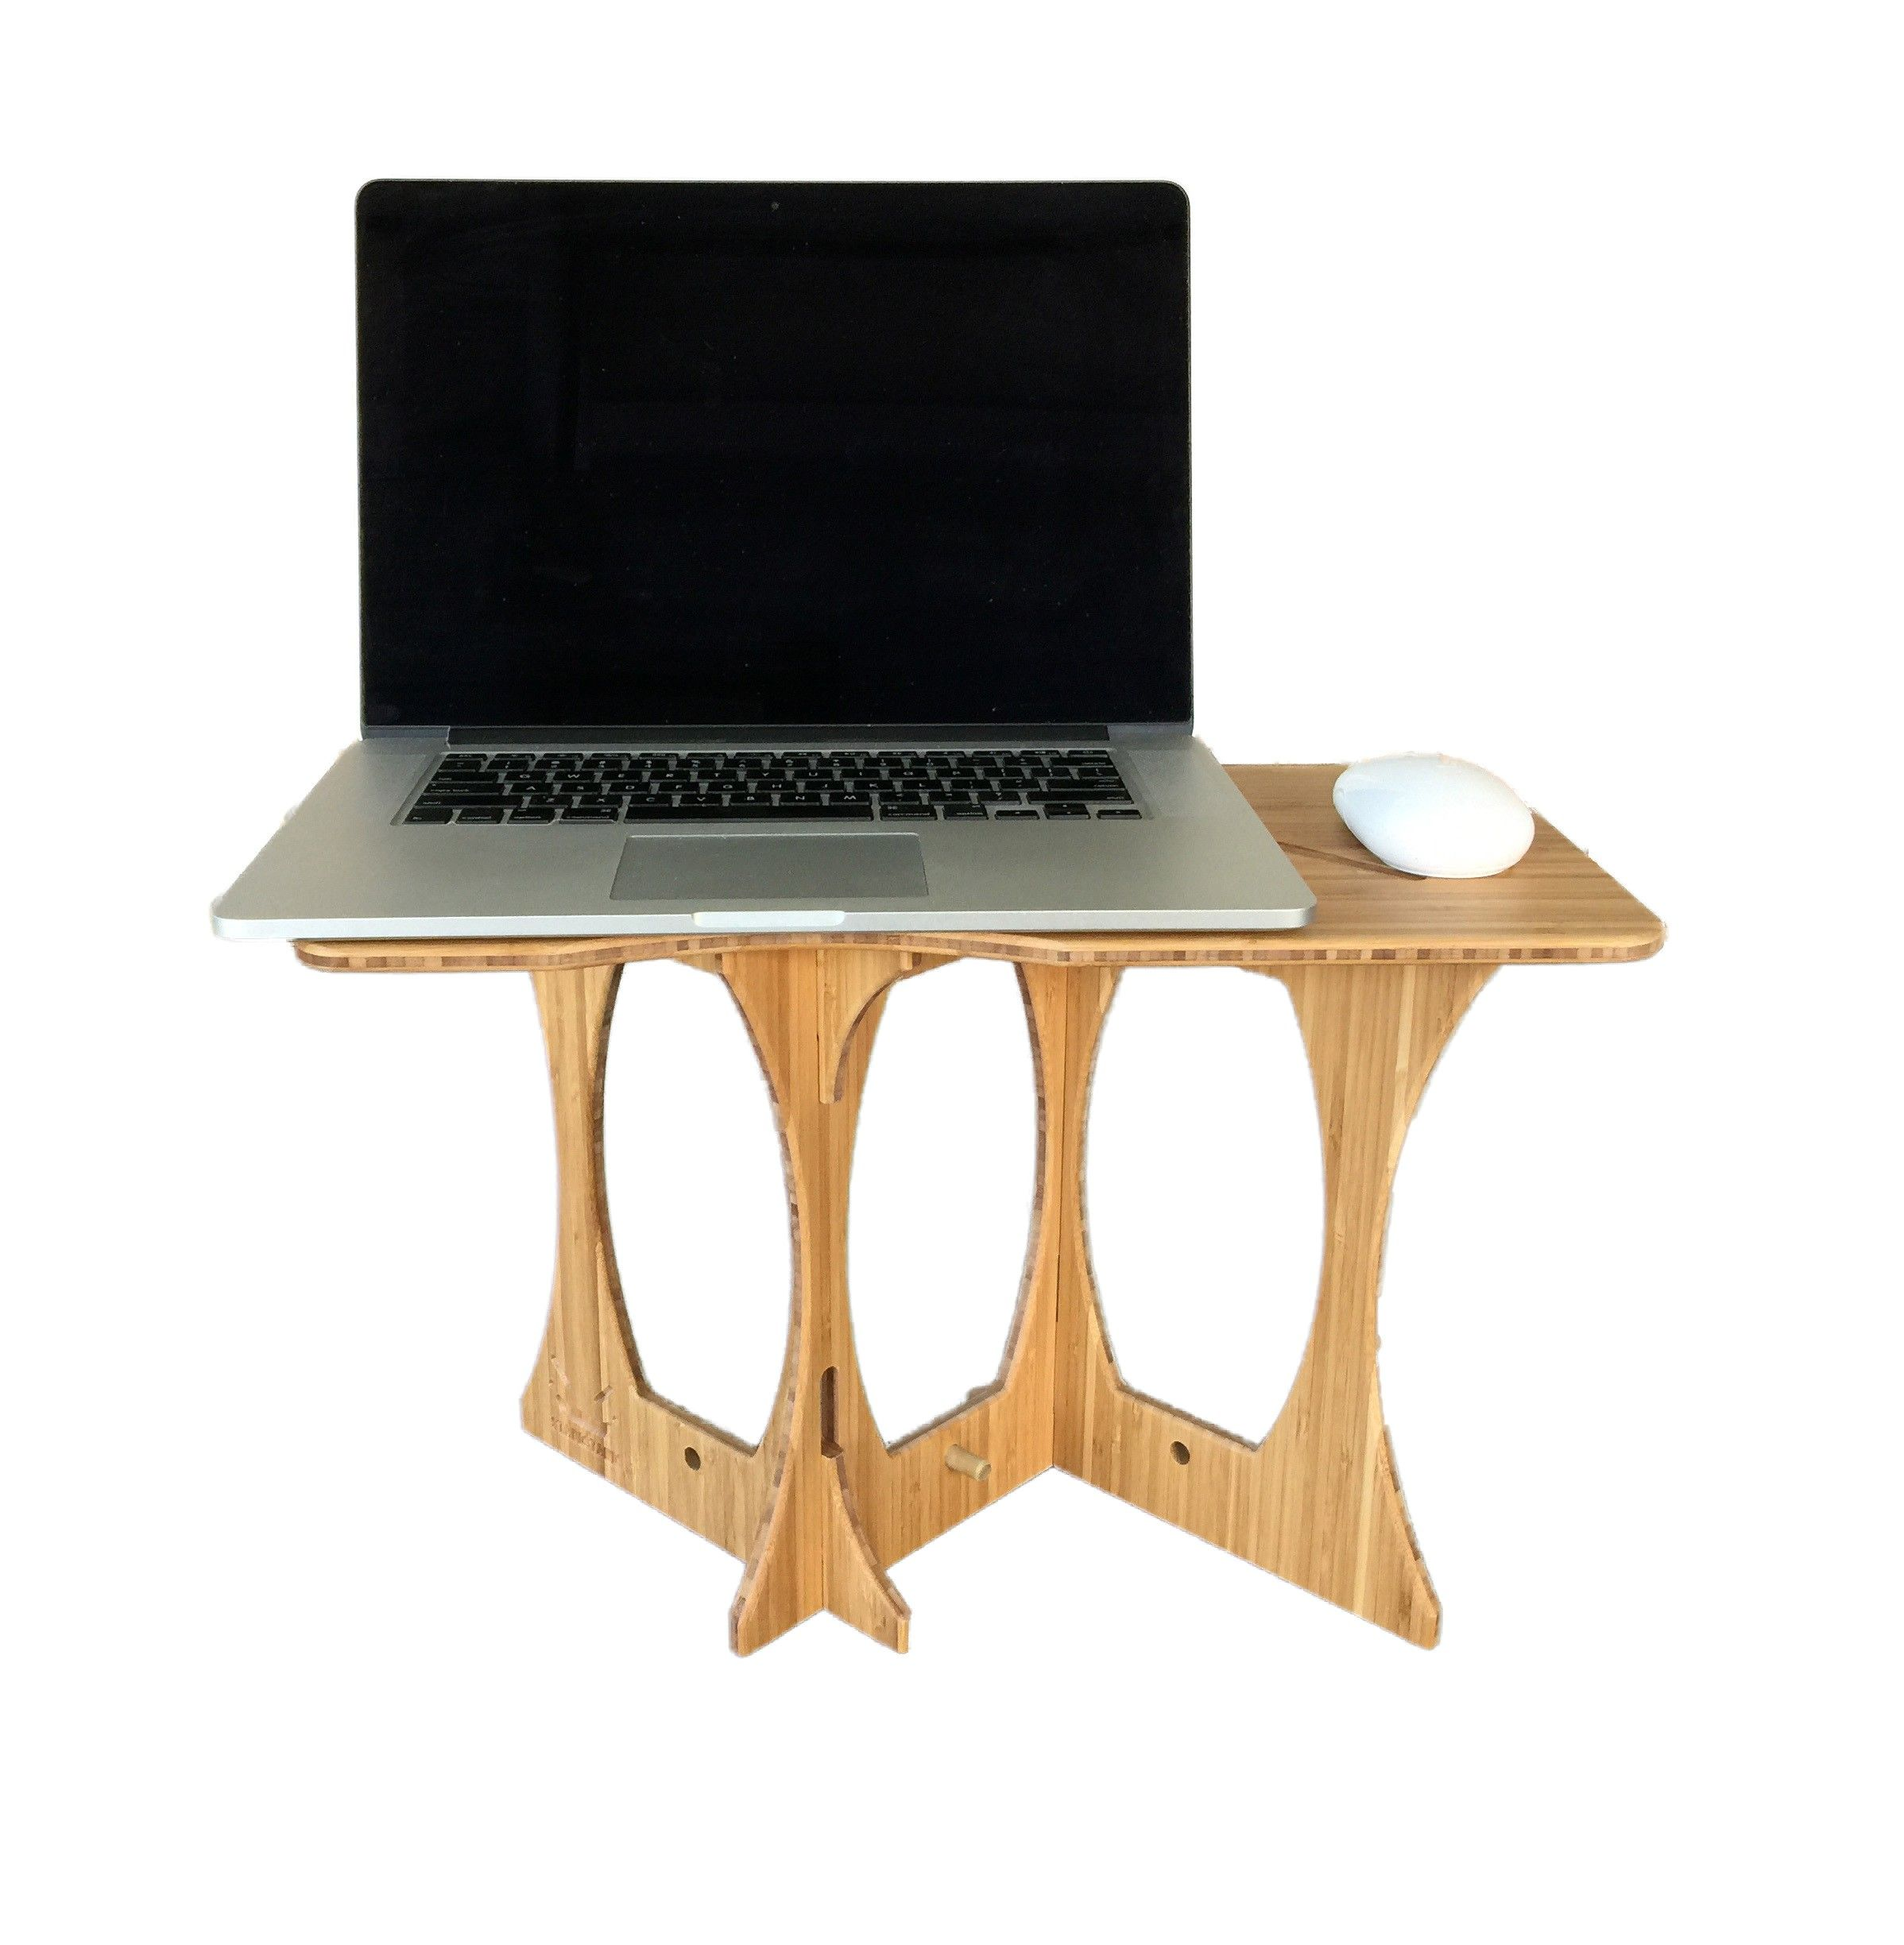 StandStand Mouse (Bamboo) | StandStand | Portable Standing Desk ...